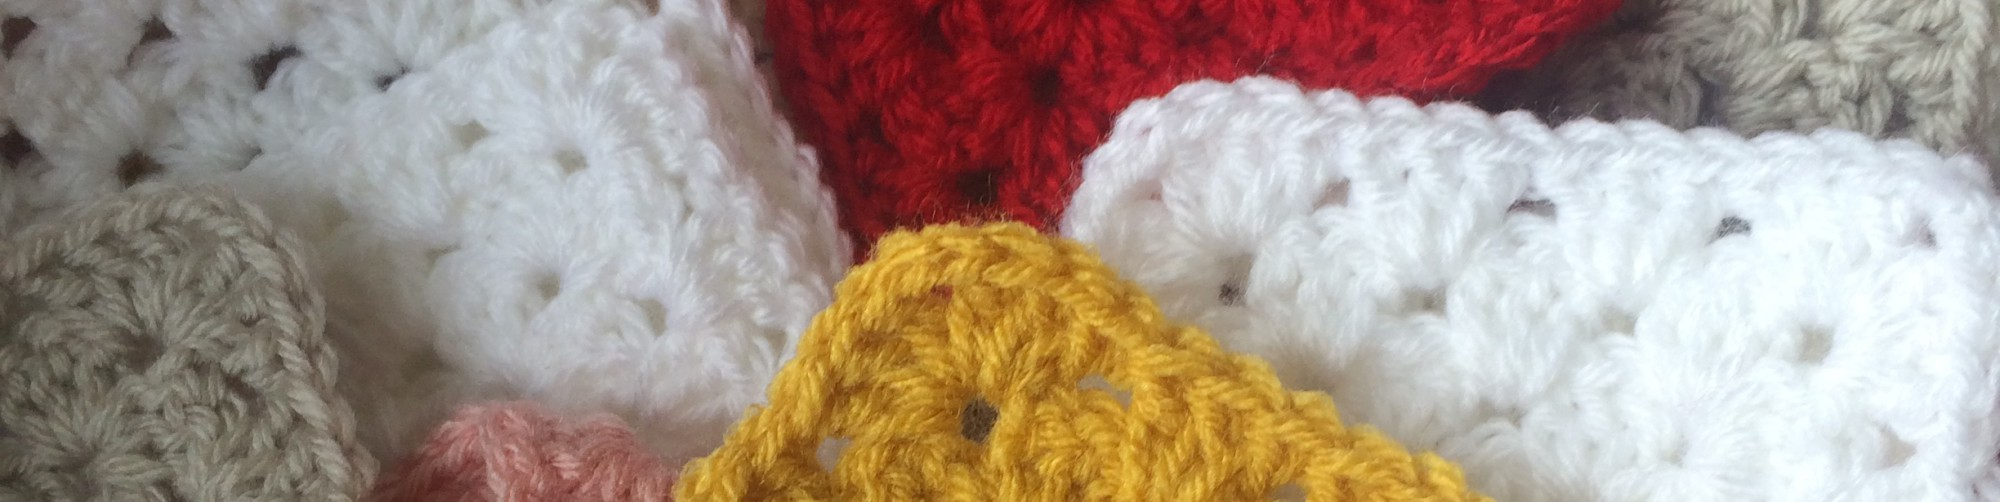 Square-a-Day Crochet Blankets – 3 Options